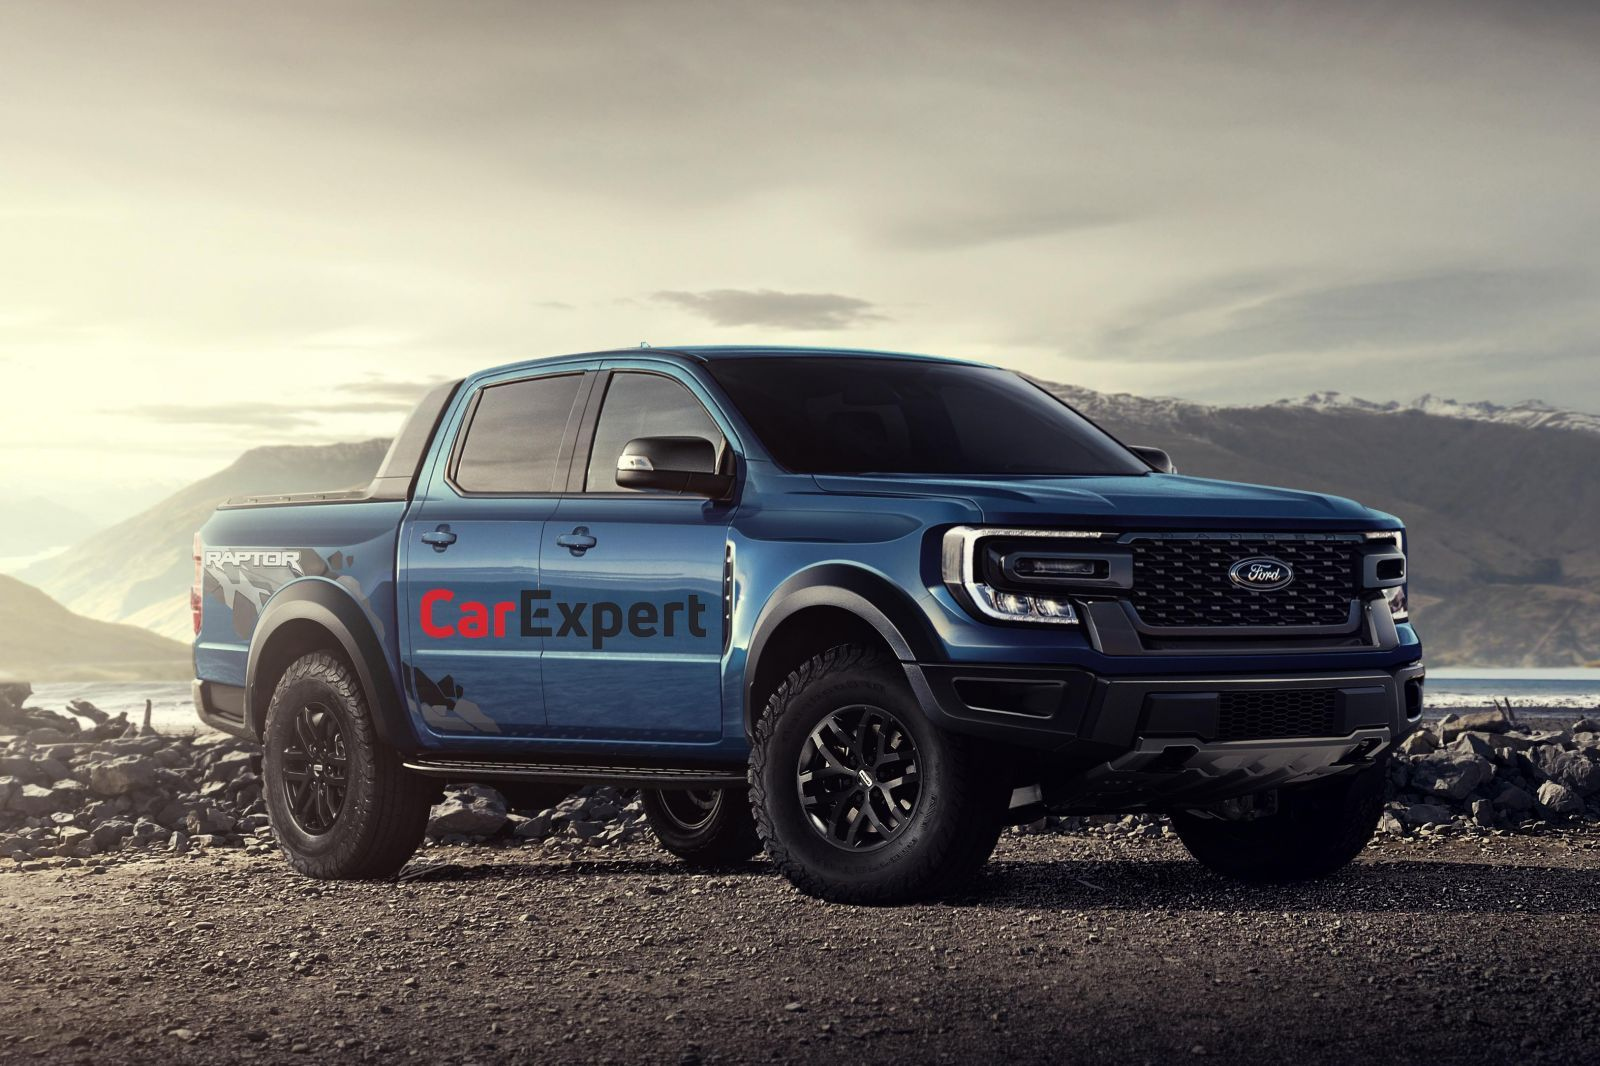 Report: Ford Ranger Raptor Gets A 325-Hp V6, Fox Shocks; May